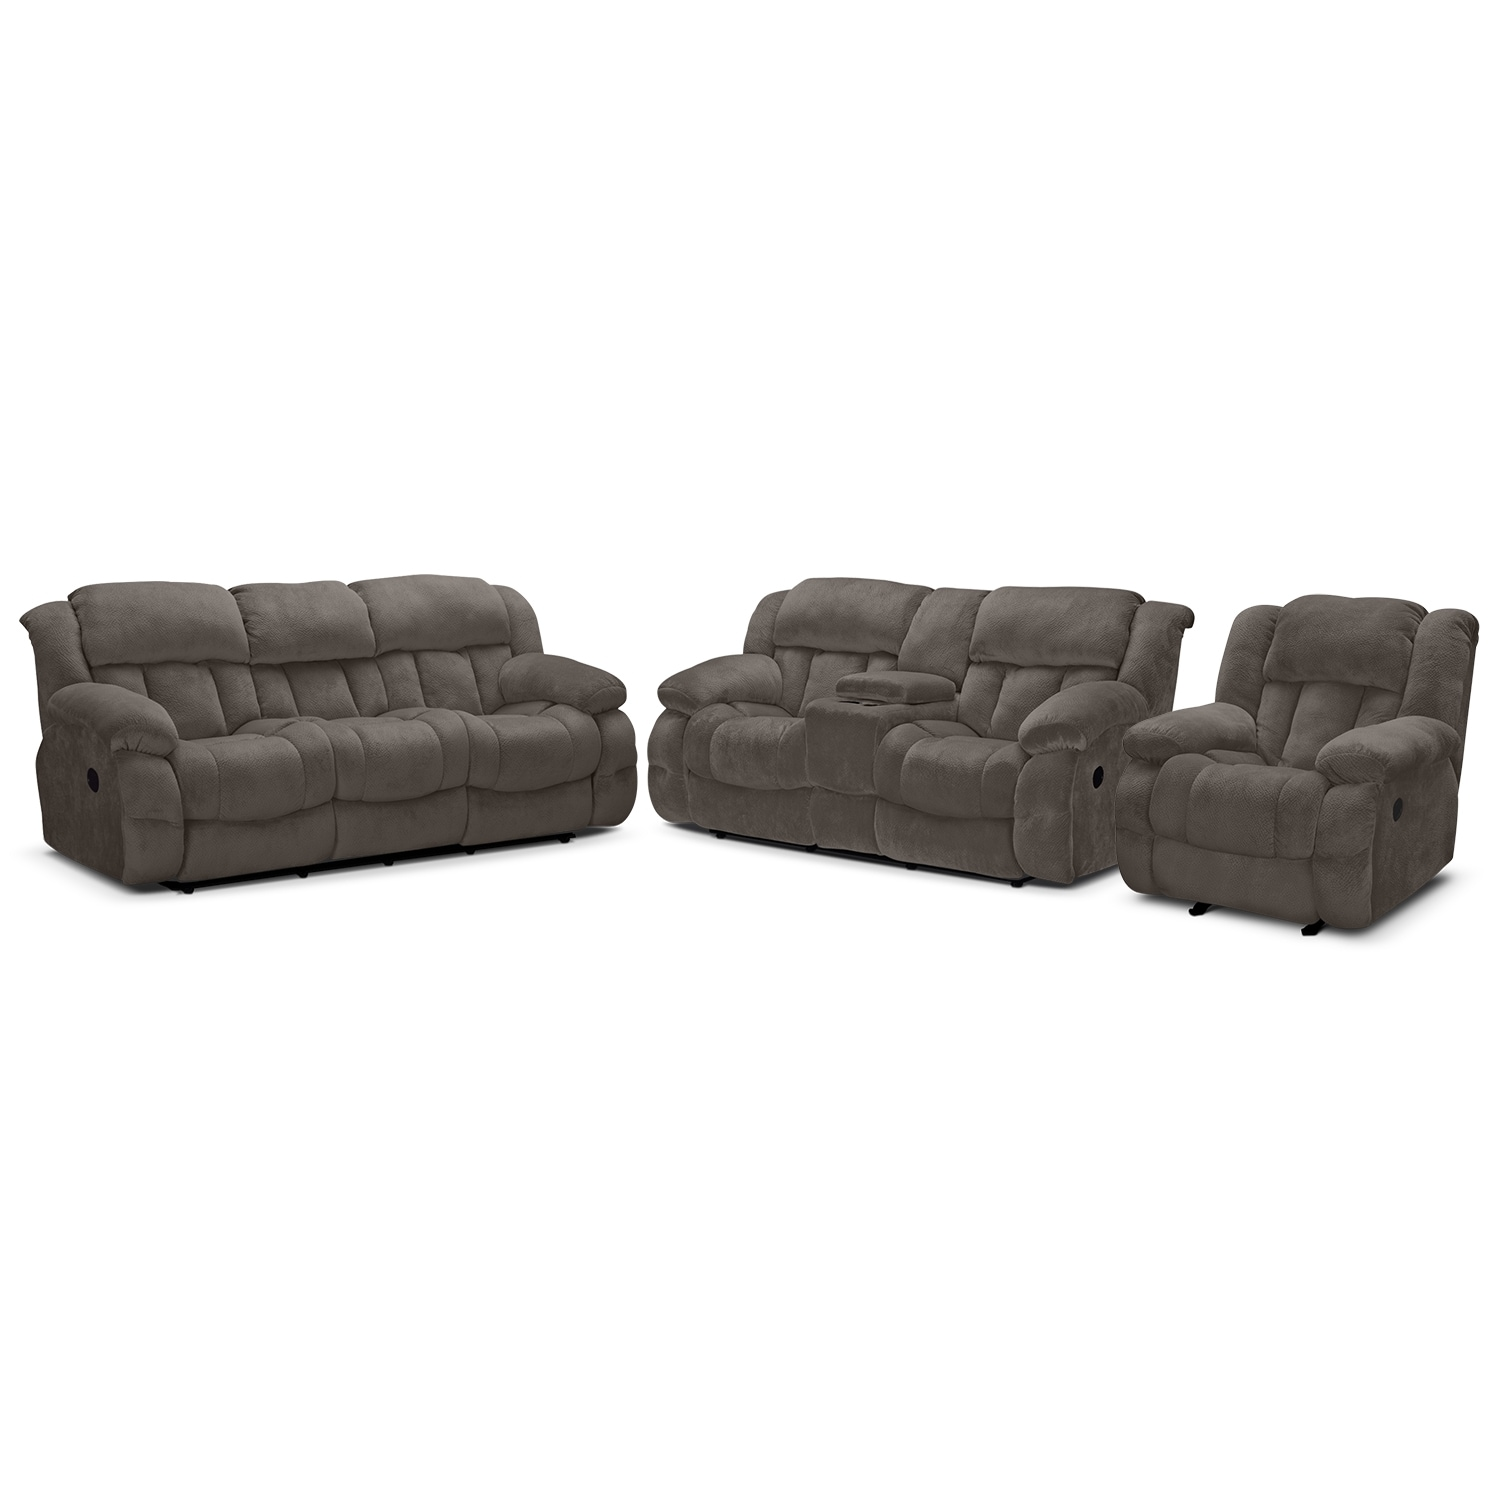 Living Room Furniture - Park City 3 Pc. Reclining Living Room